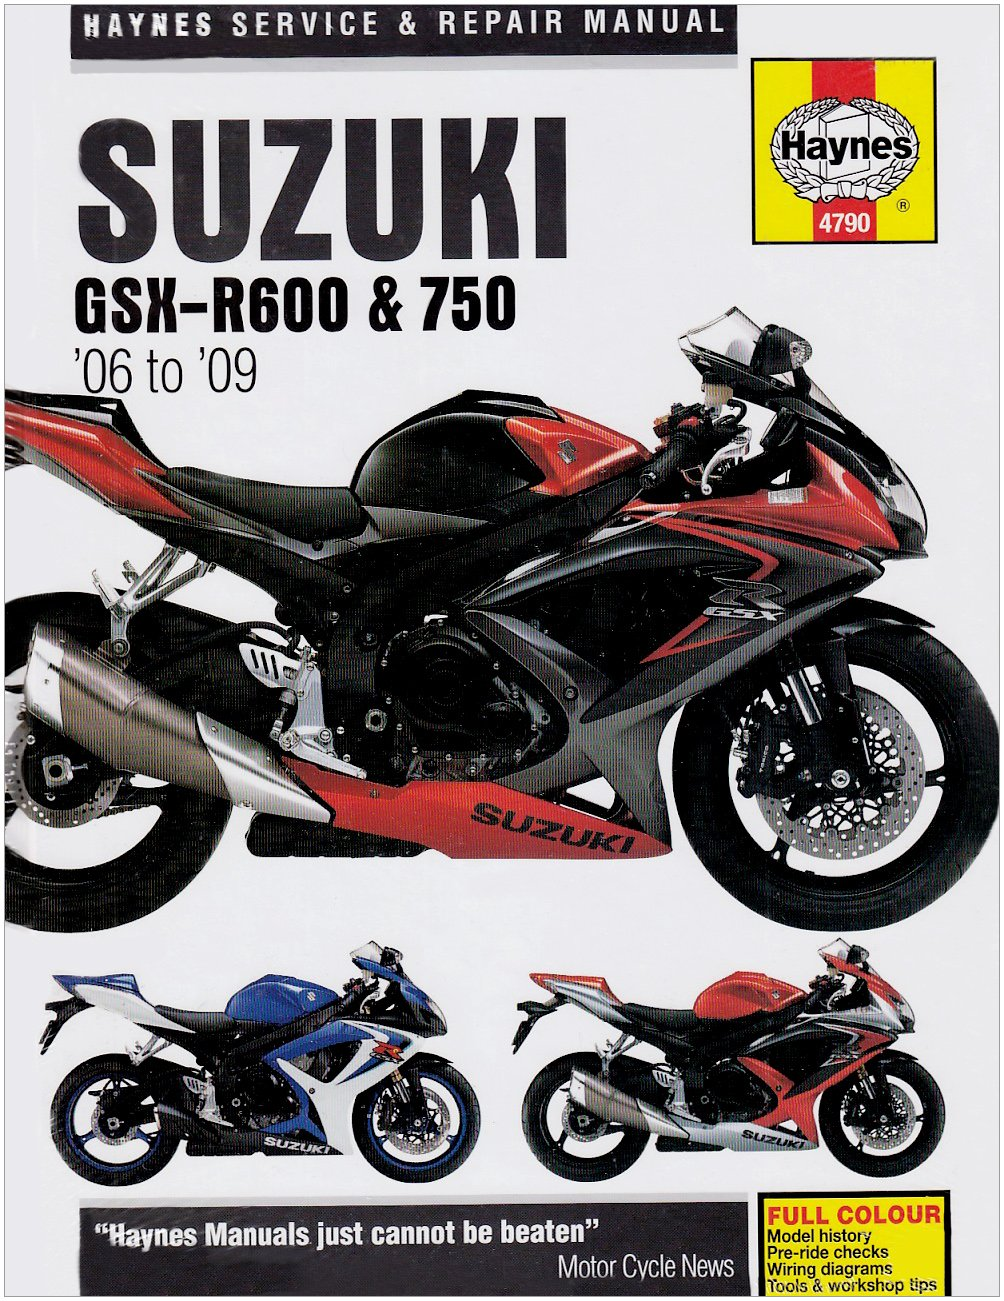 Title suzuki gsx r600 and 750 service and repair manual 2006 to title suzuki gsx r600 and 750 service and repair manual 2006 to 2009 haynes service and repair manuals matthew coombs 9781844257904 amazon books fandeluxe Choice Image